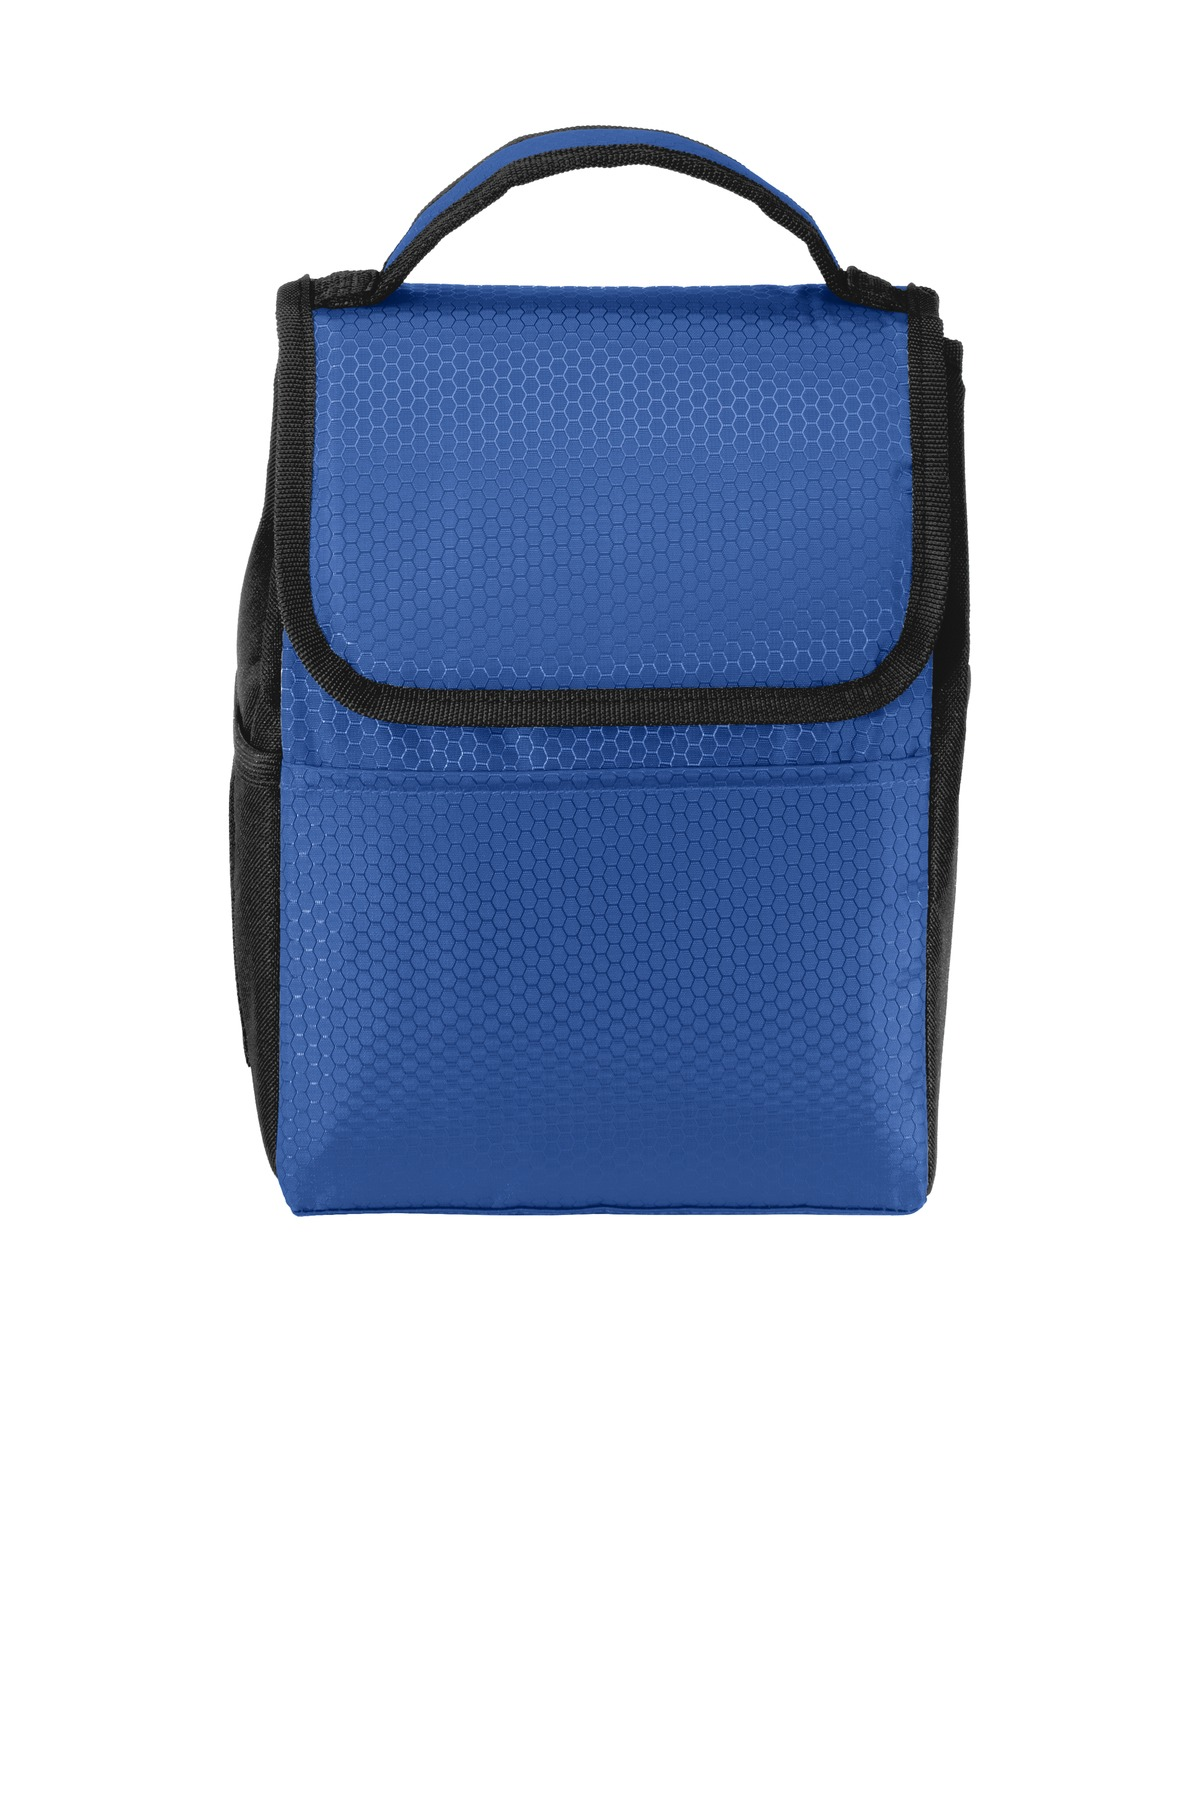 Port Authority ®  Lunch Bag Cooler. BG500 - Twilight Blue/ Black